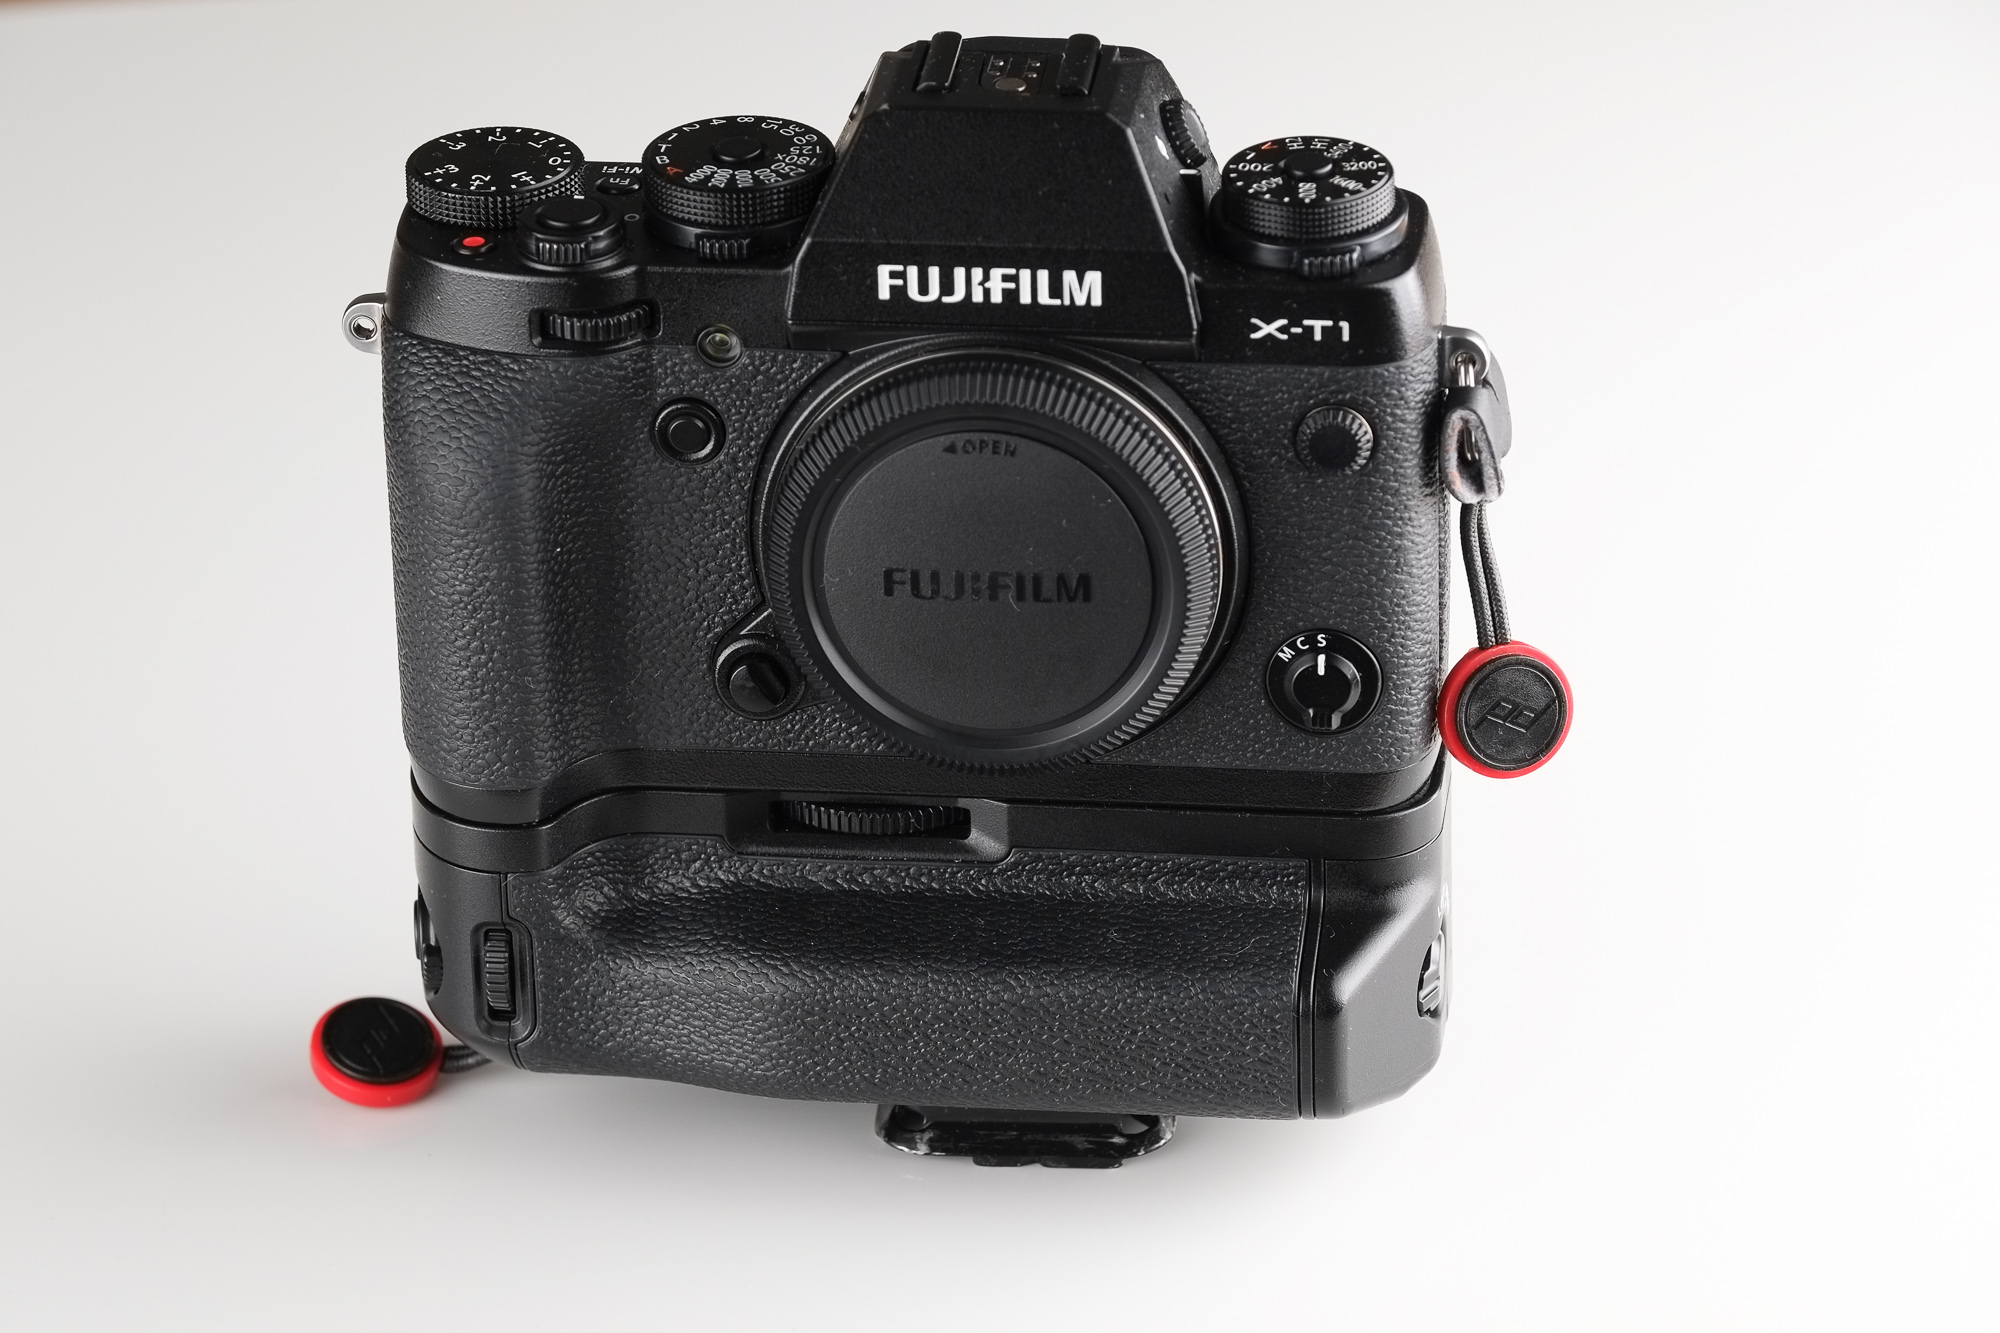 Extended Carry/Hiking: Fuji X-T1 with VG-XT1 Battery Grip, Peak Design Capture Clip, and Peak Design Anchors